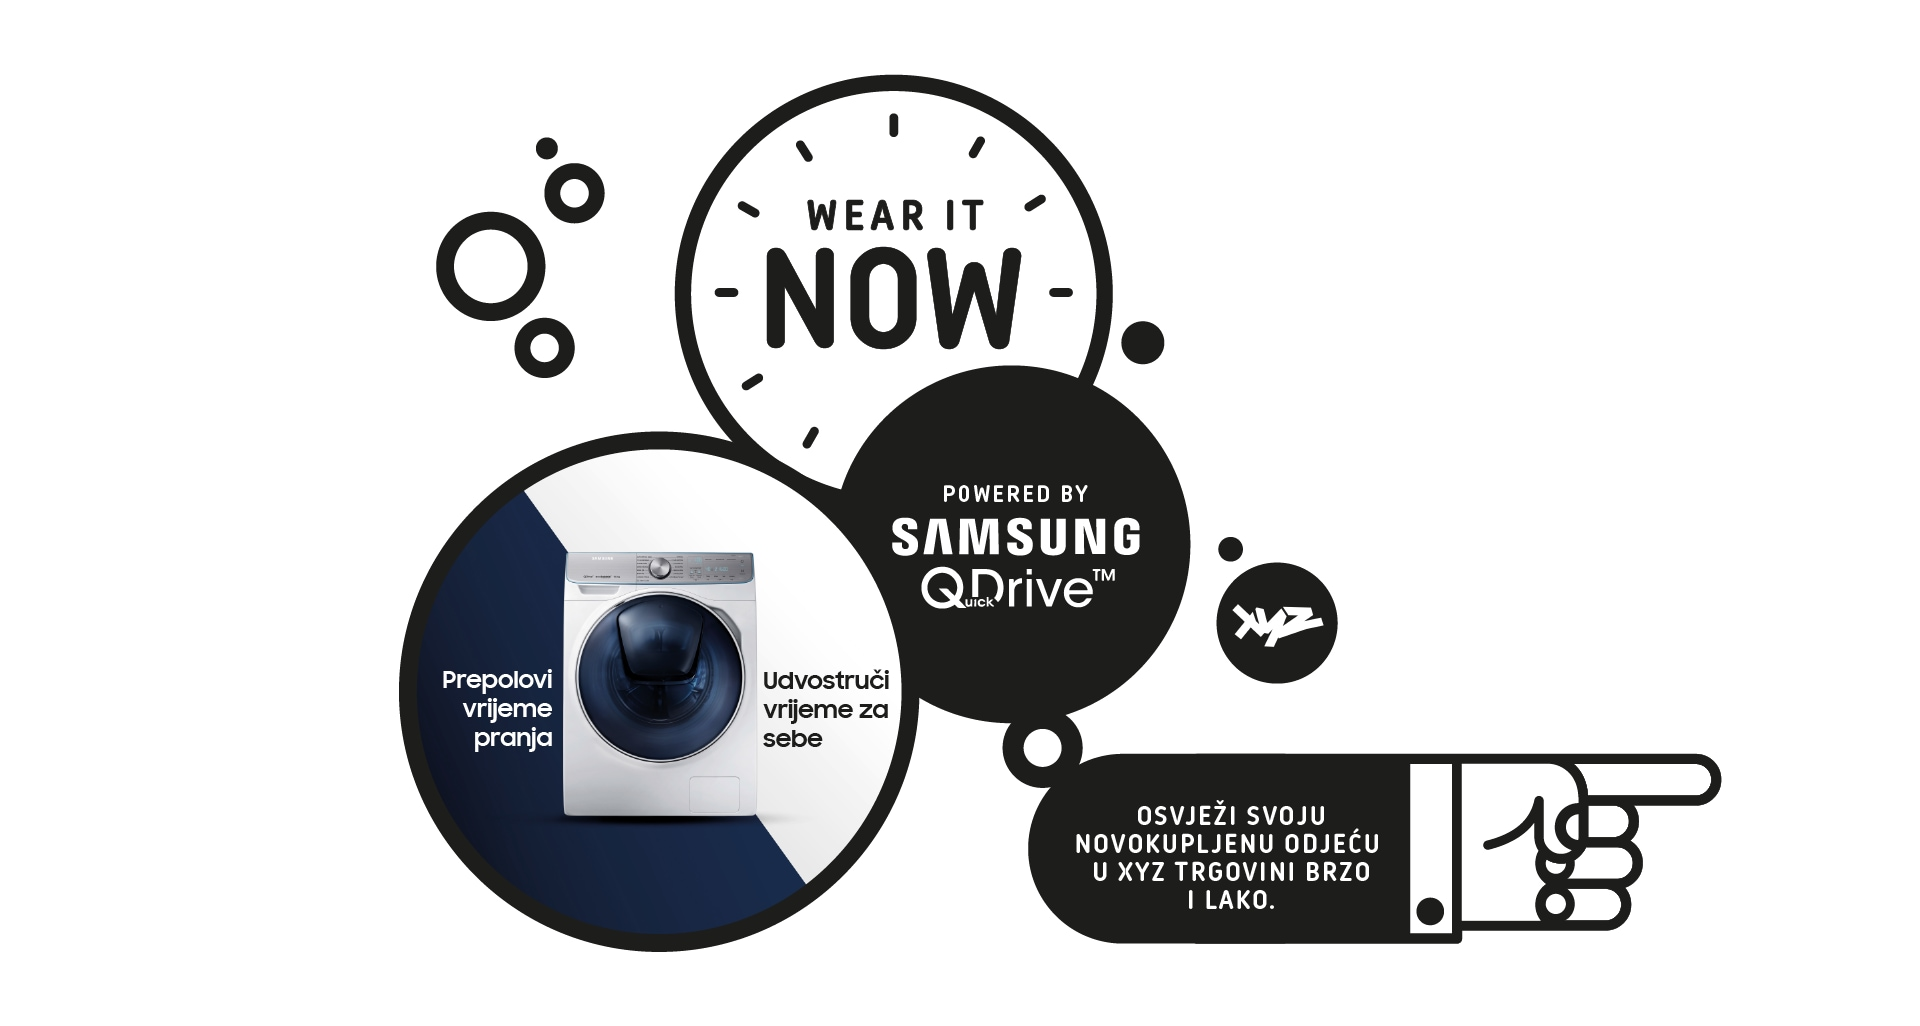 Samsung predstavlja QuickDrive perilicu i WEAR IT NOW! uslugu u suradnji s XYZ.